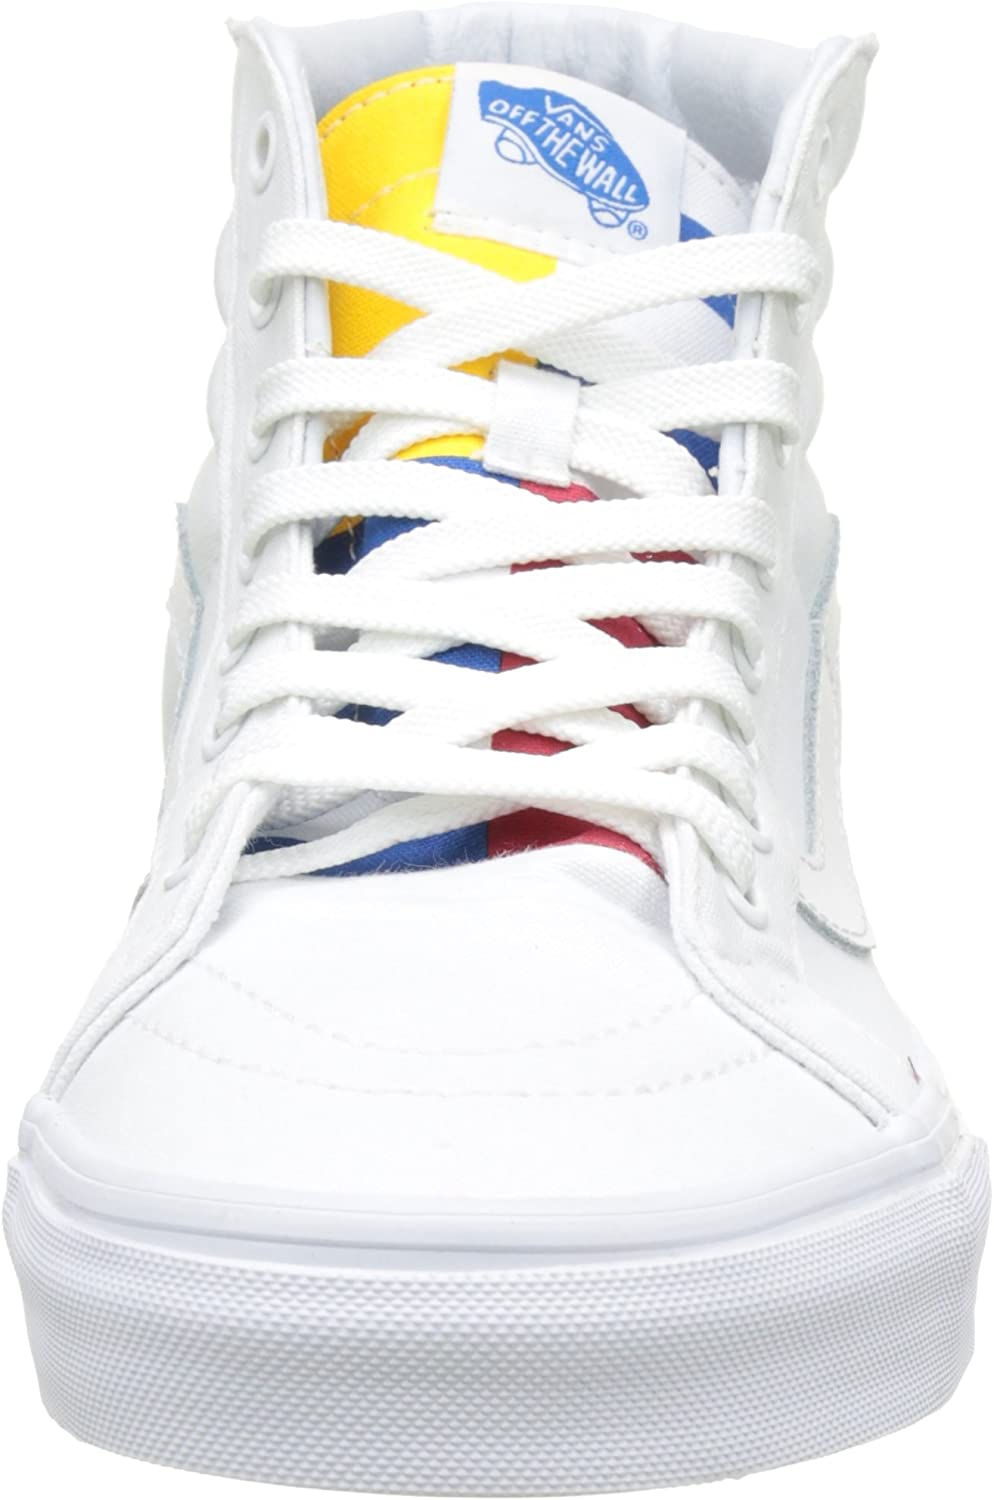 Vans Men's High-Top Trainers True White Blue Red